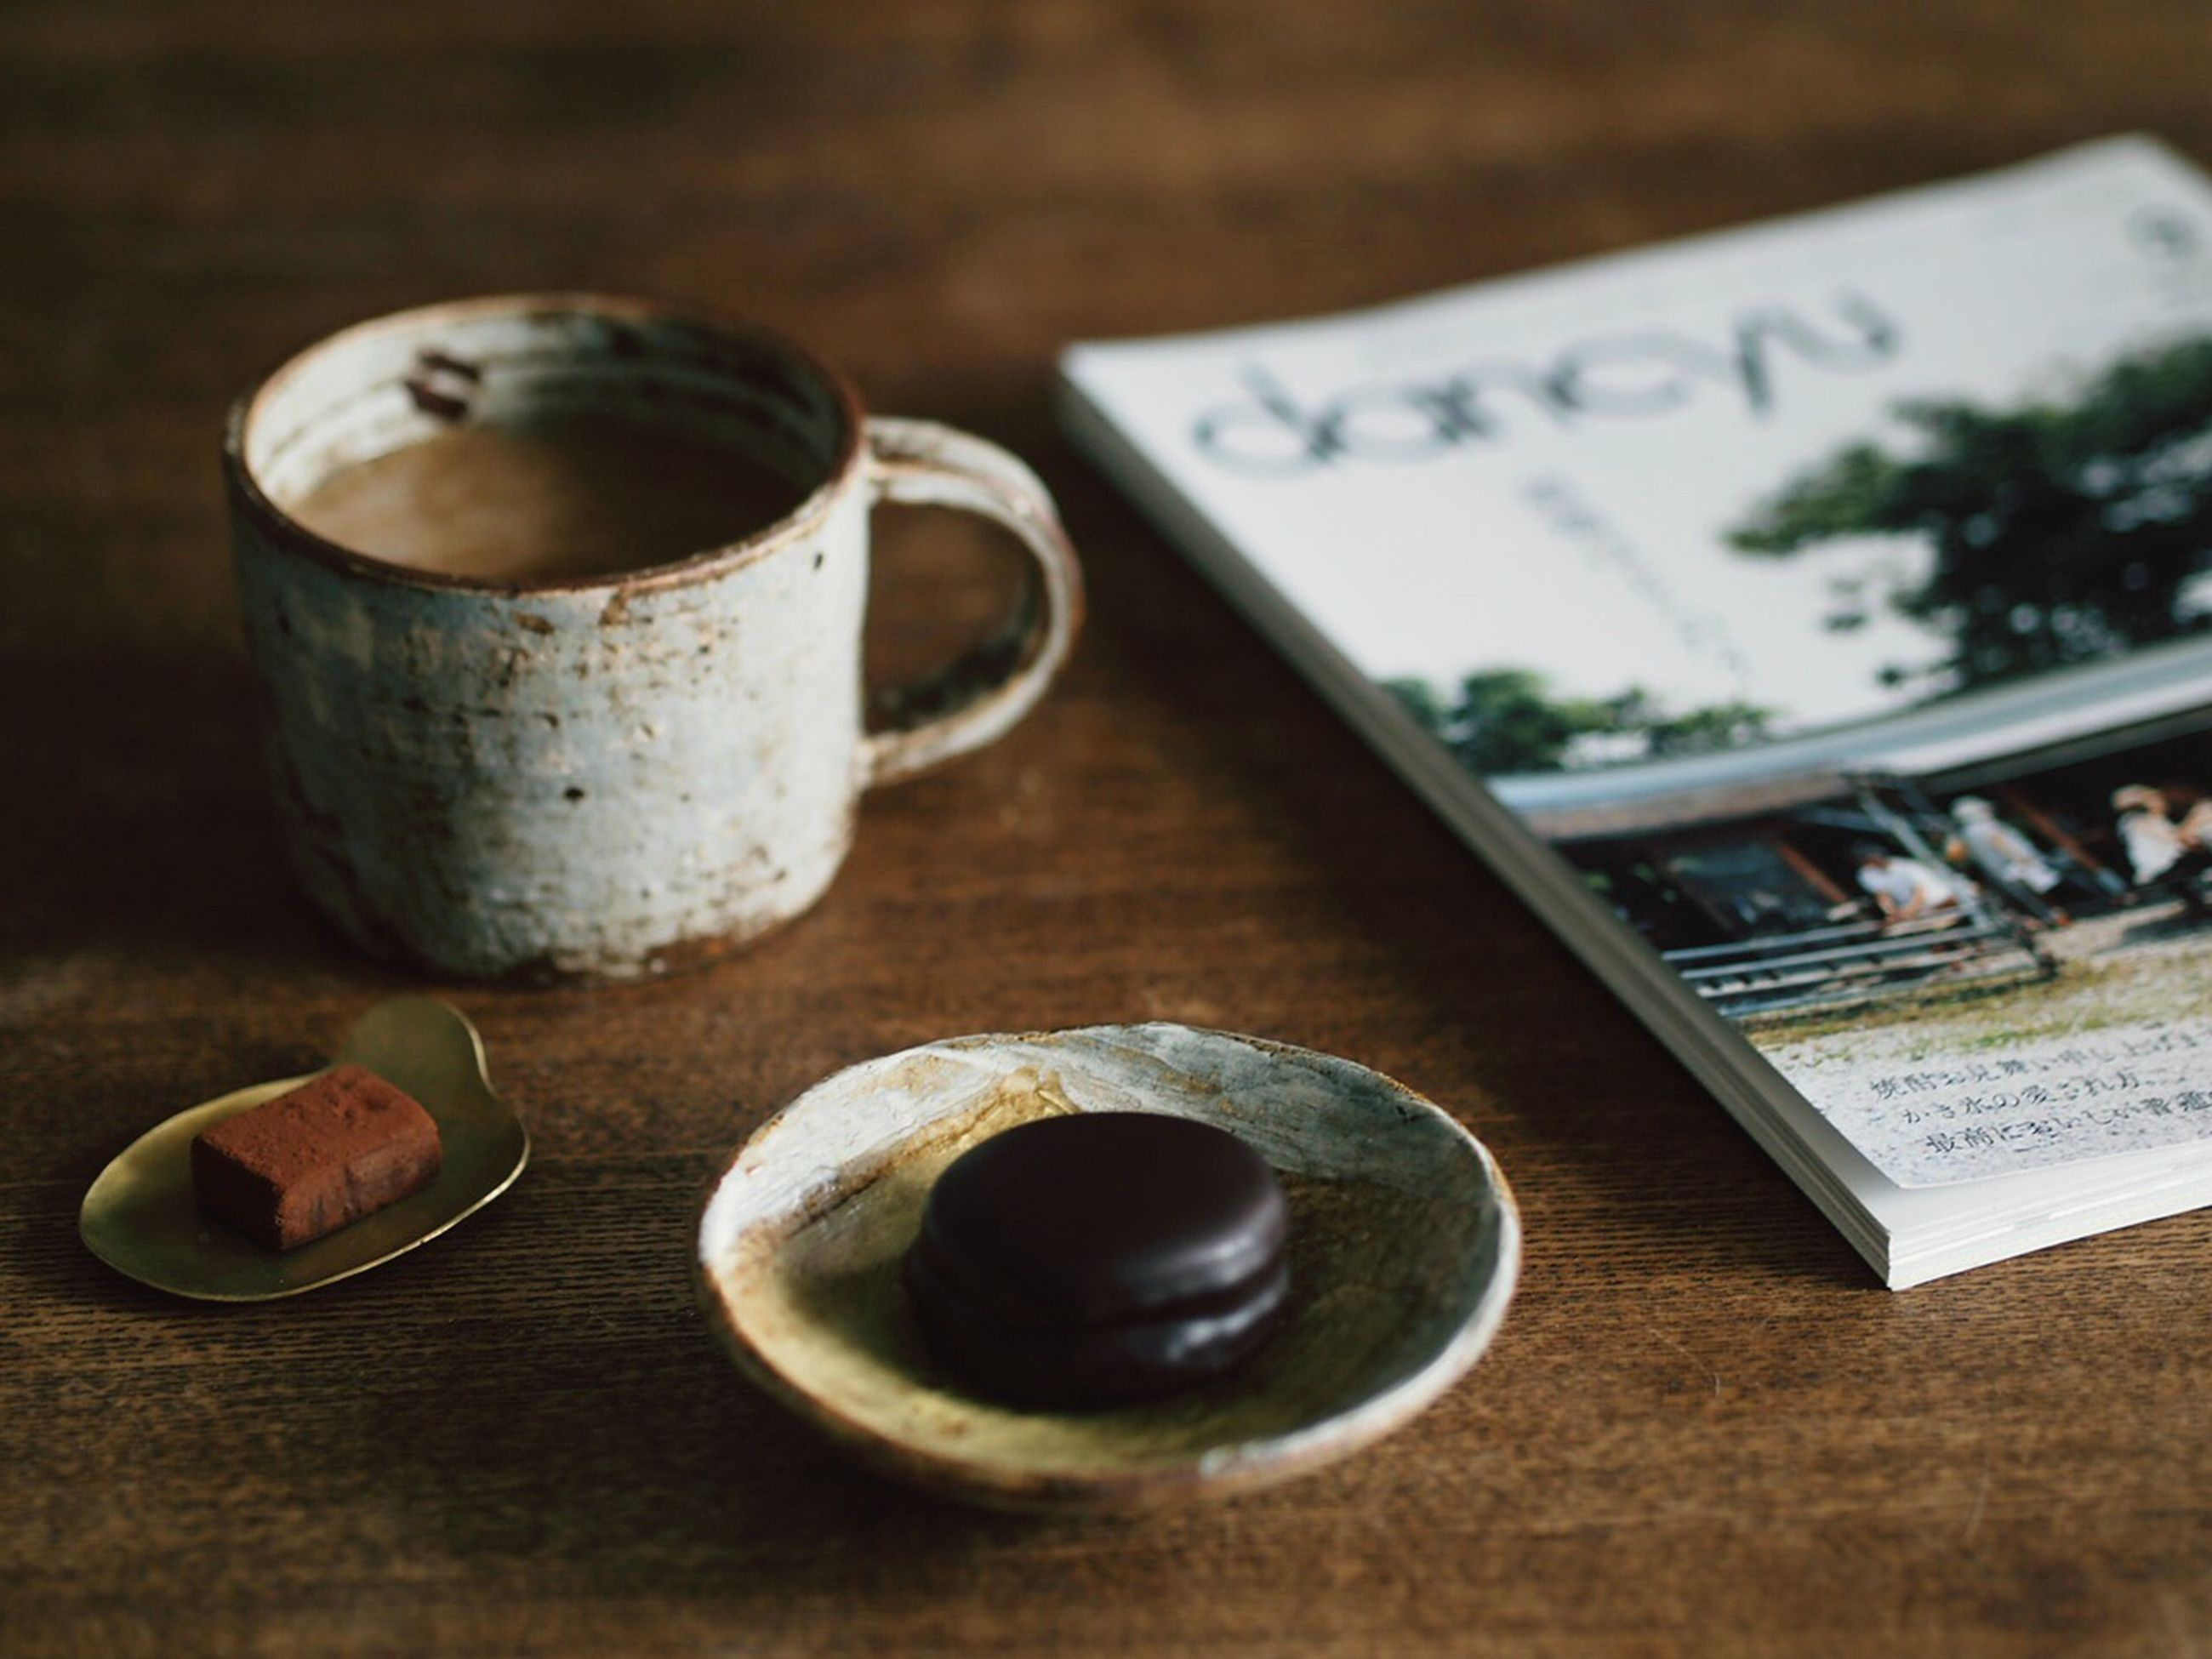 indoors, still life, table, close-up, metal, wood - material, old, selective focus, metallic, no people, food and drink, rusty, focus on foreground, variation, high angle view, wooden, container, communication, antique, equipment